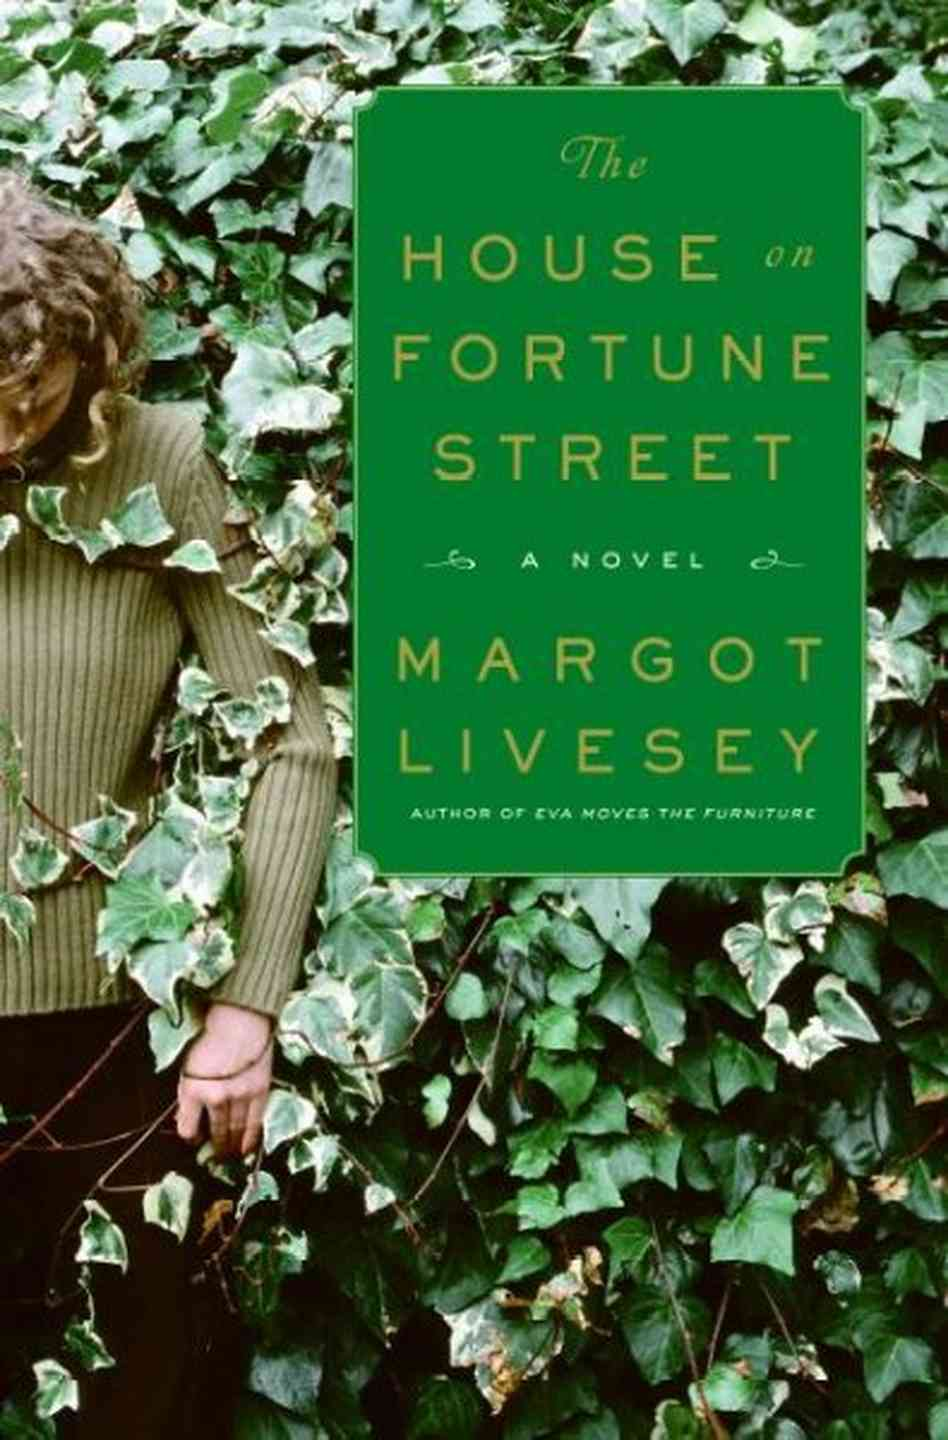 2009 Fiction:  The House on Fortune Street  by Margot Livesey